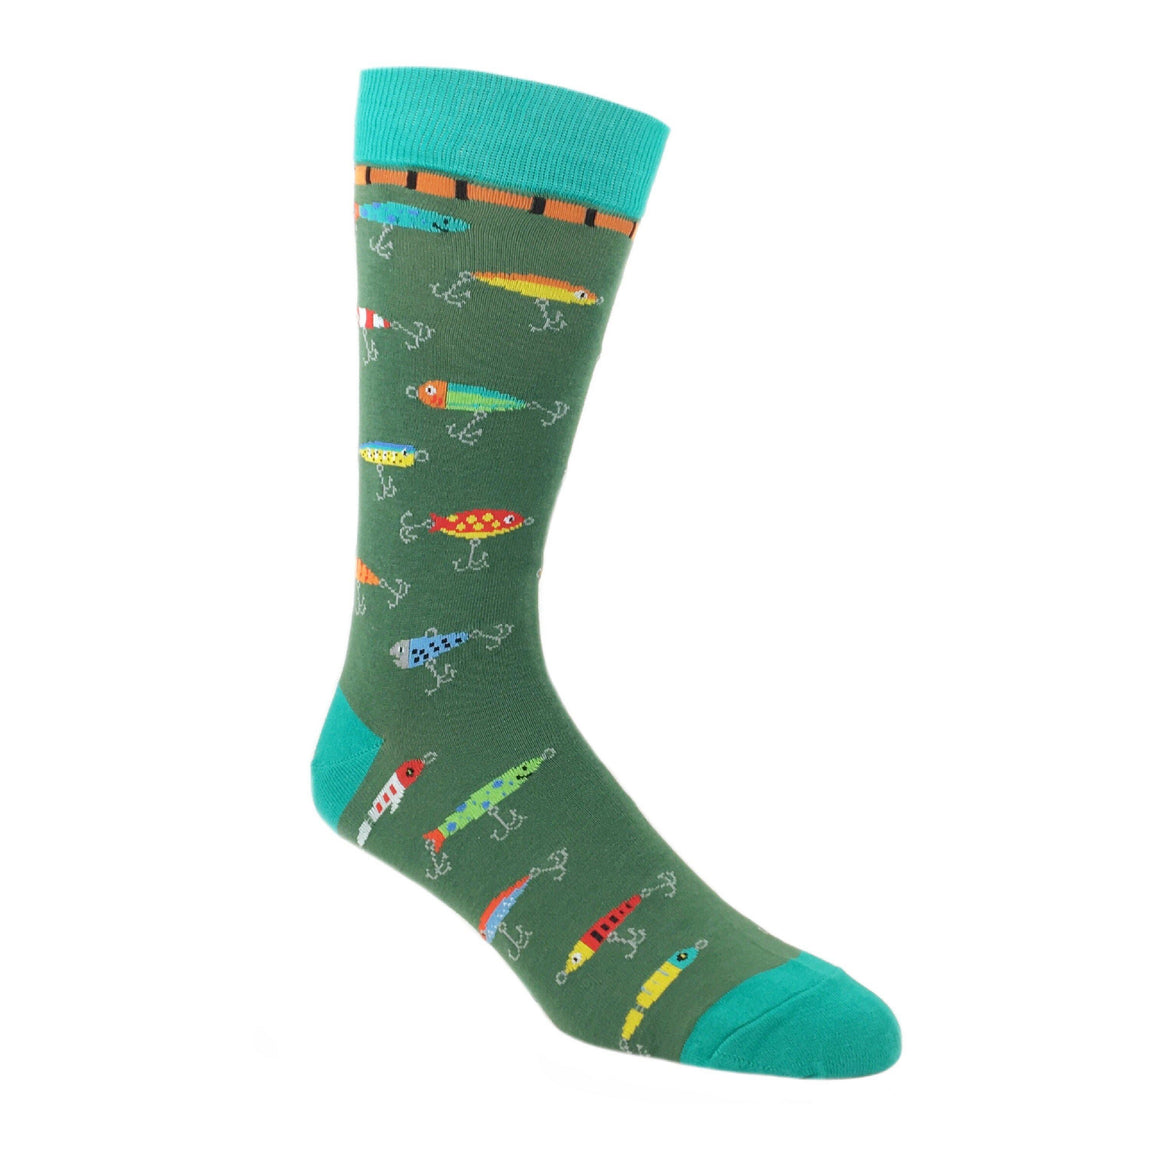 Fishing Lure Socks by Foot Traffic - The Sock Spot